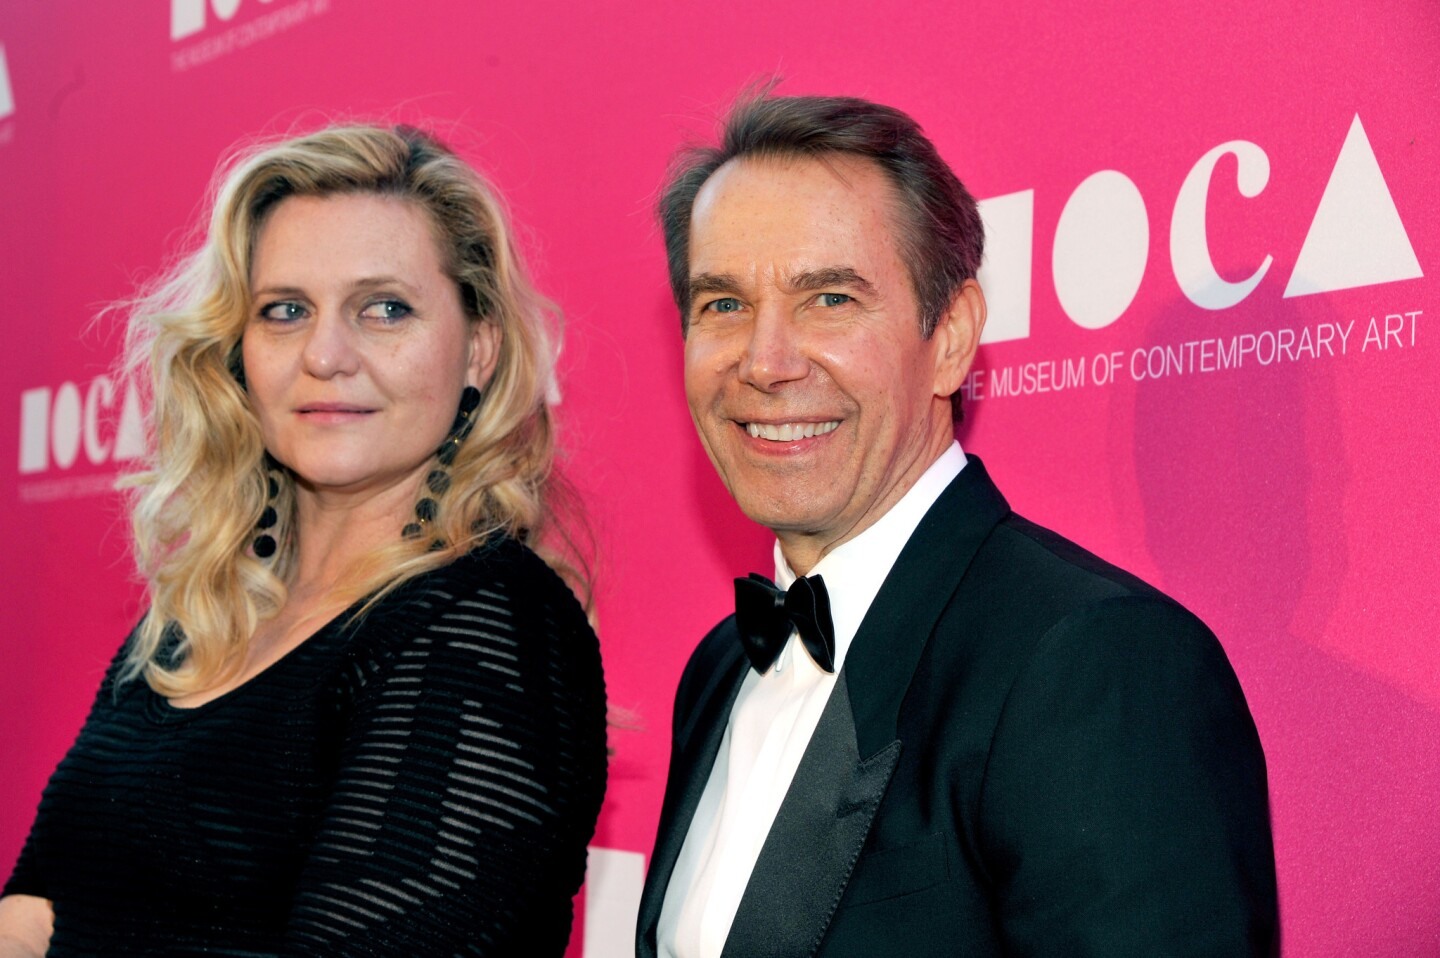 Artist Justine Wheeler Koons and honoree Jeff Koons at the MOCA Gala 2017 honoring Jeff Koons at The Geffen Contemporary at MOCA in Los Angeles.